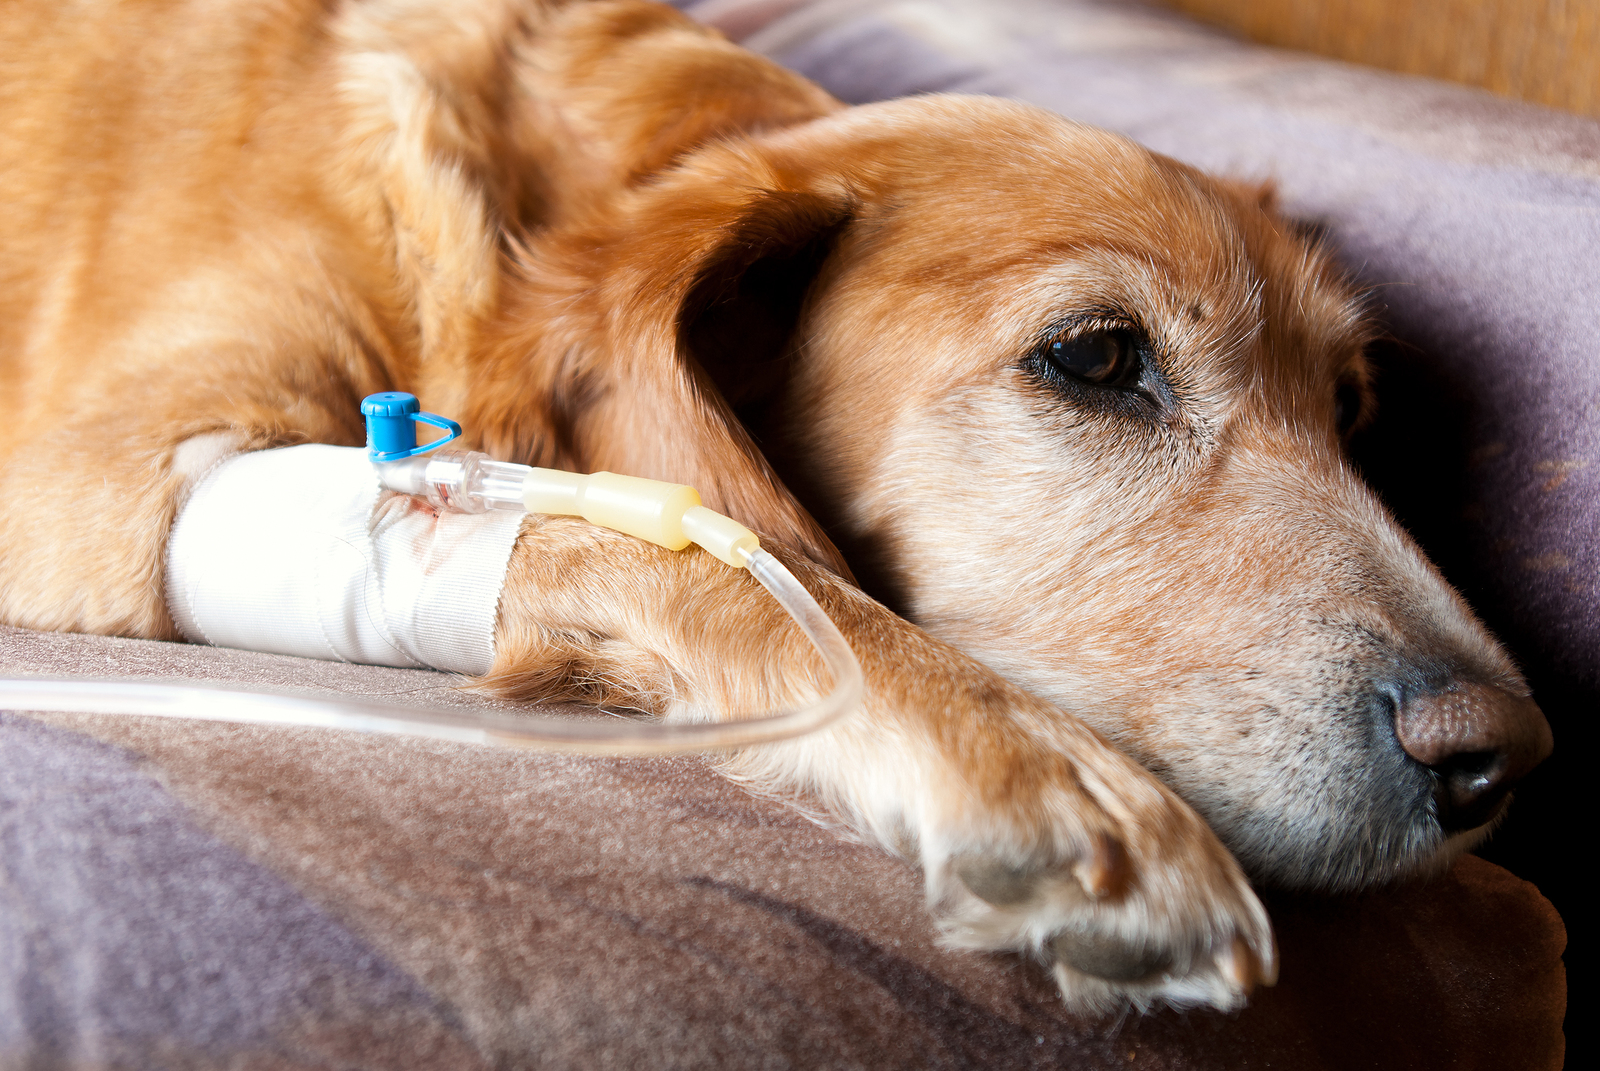 bigstock-Dog-Lying-On-Bed-With-Cannula--7717146.jpg